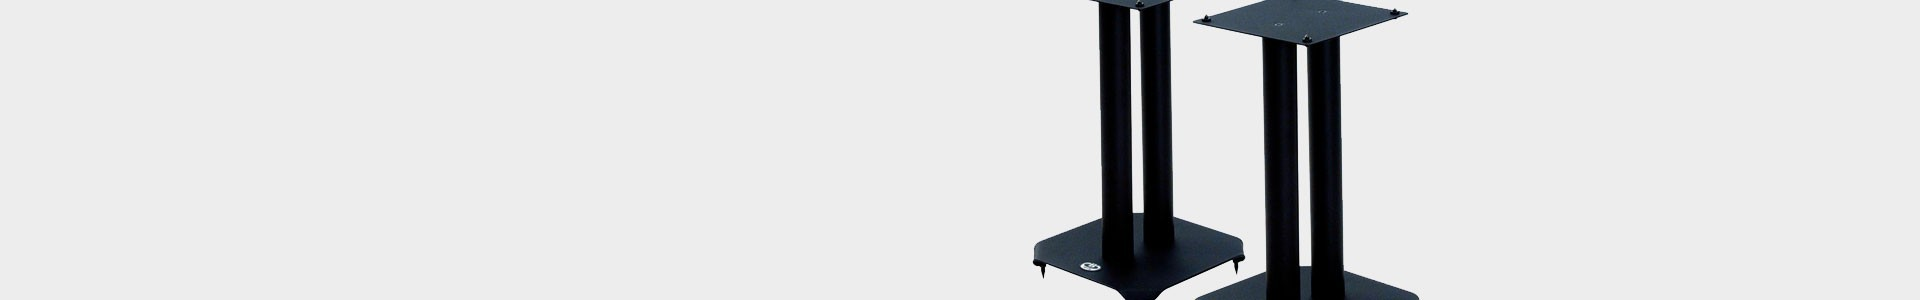 Professional floor stands for loudspeakers - Avacab